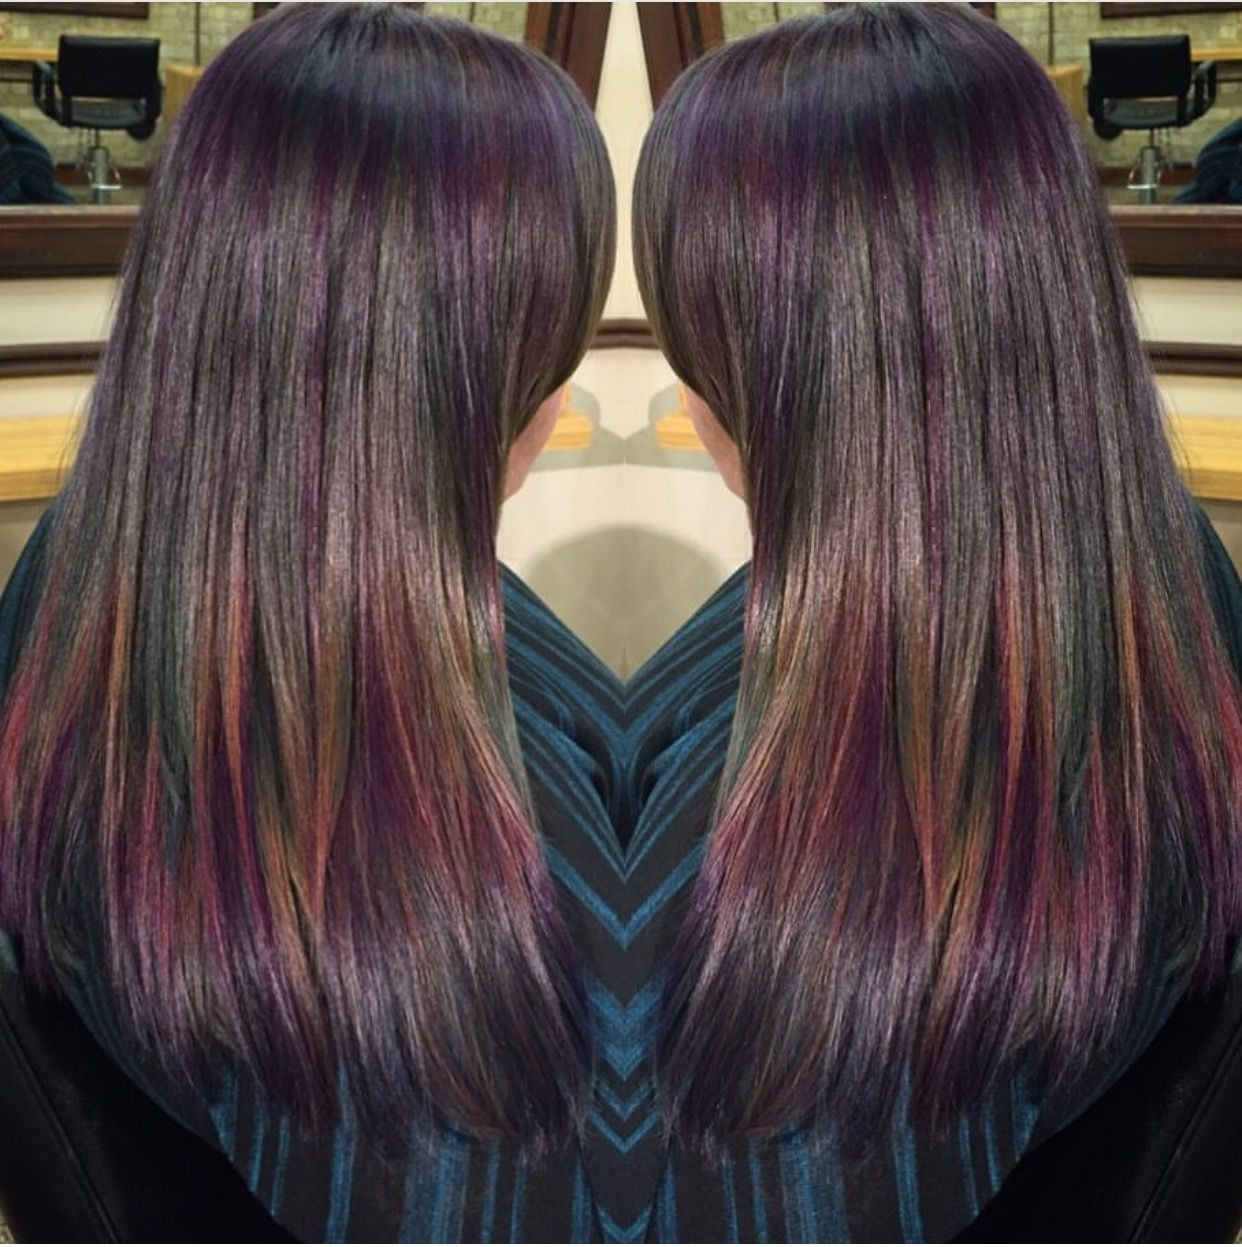 Pin on Hair Color & Cut